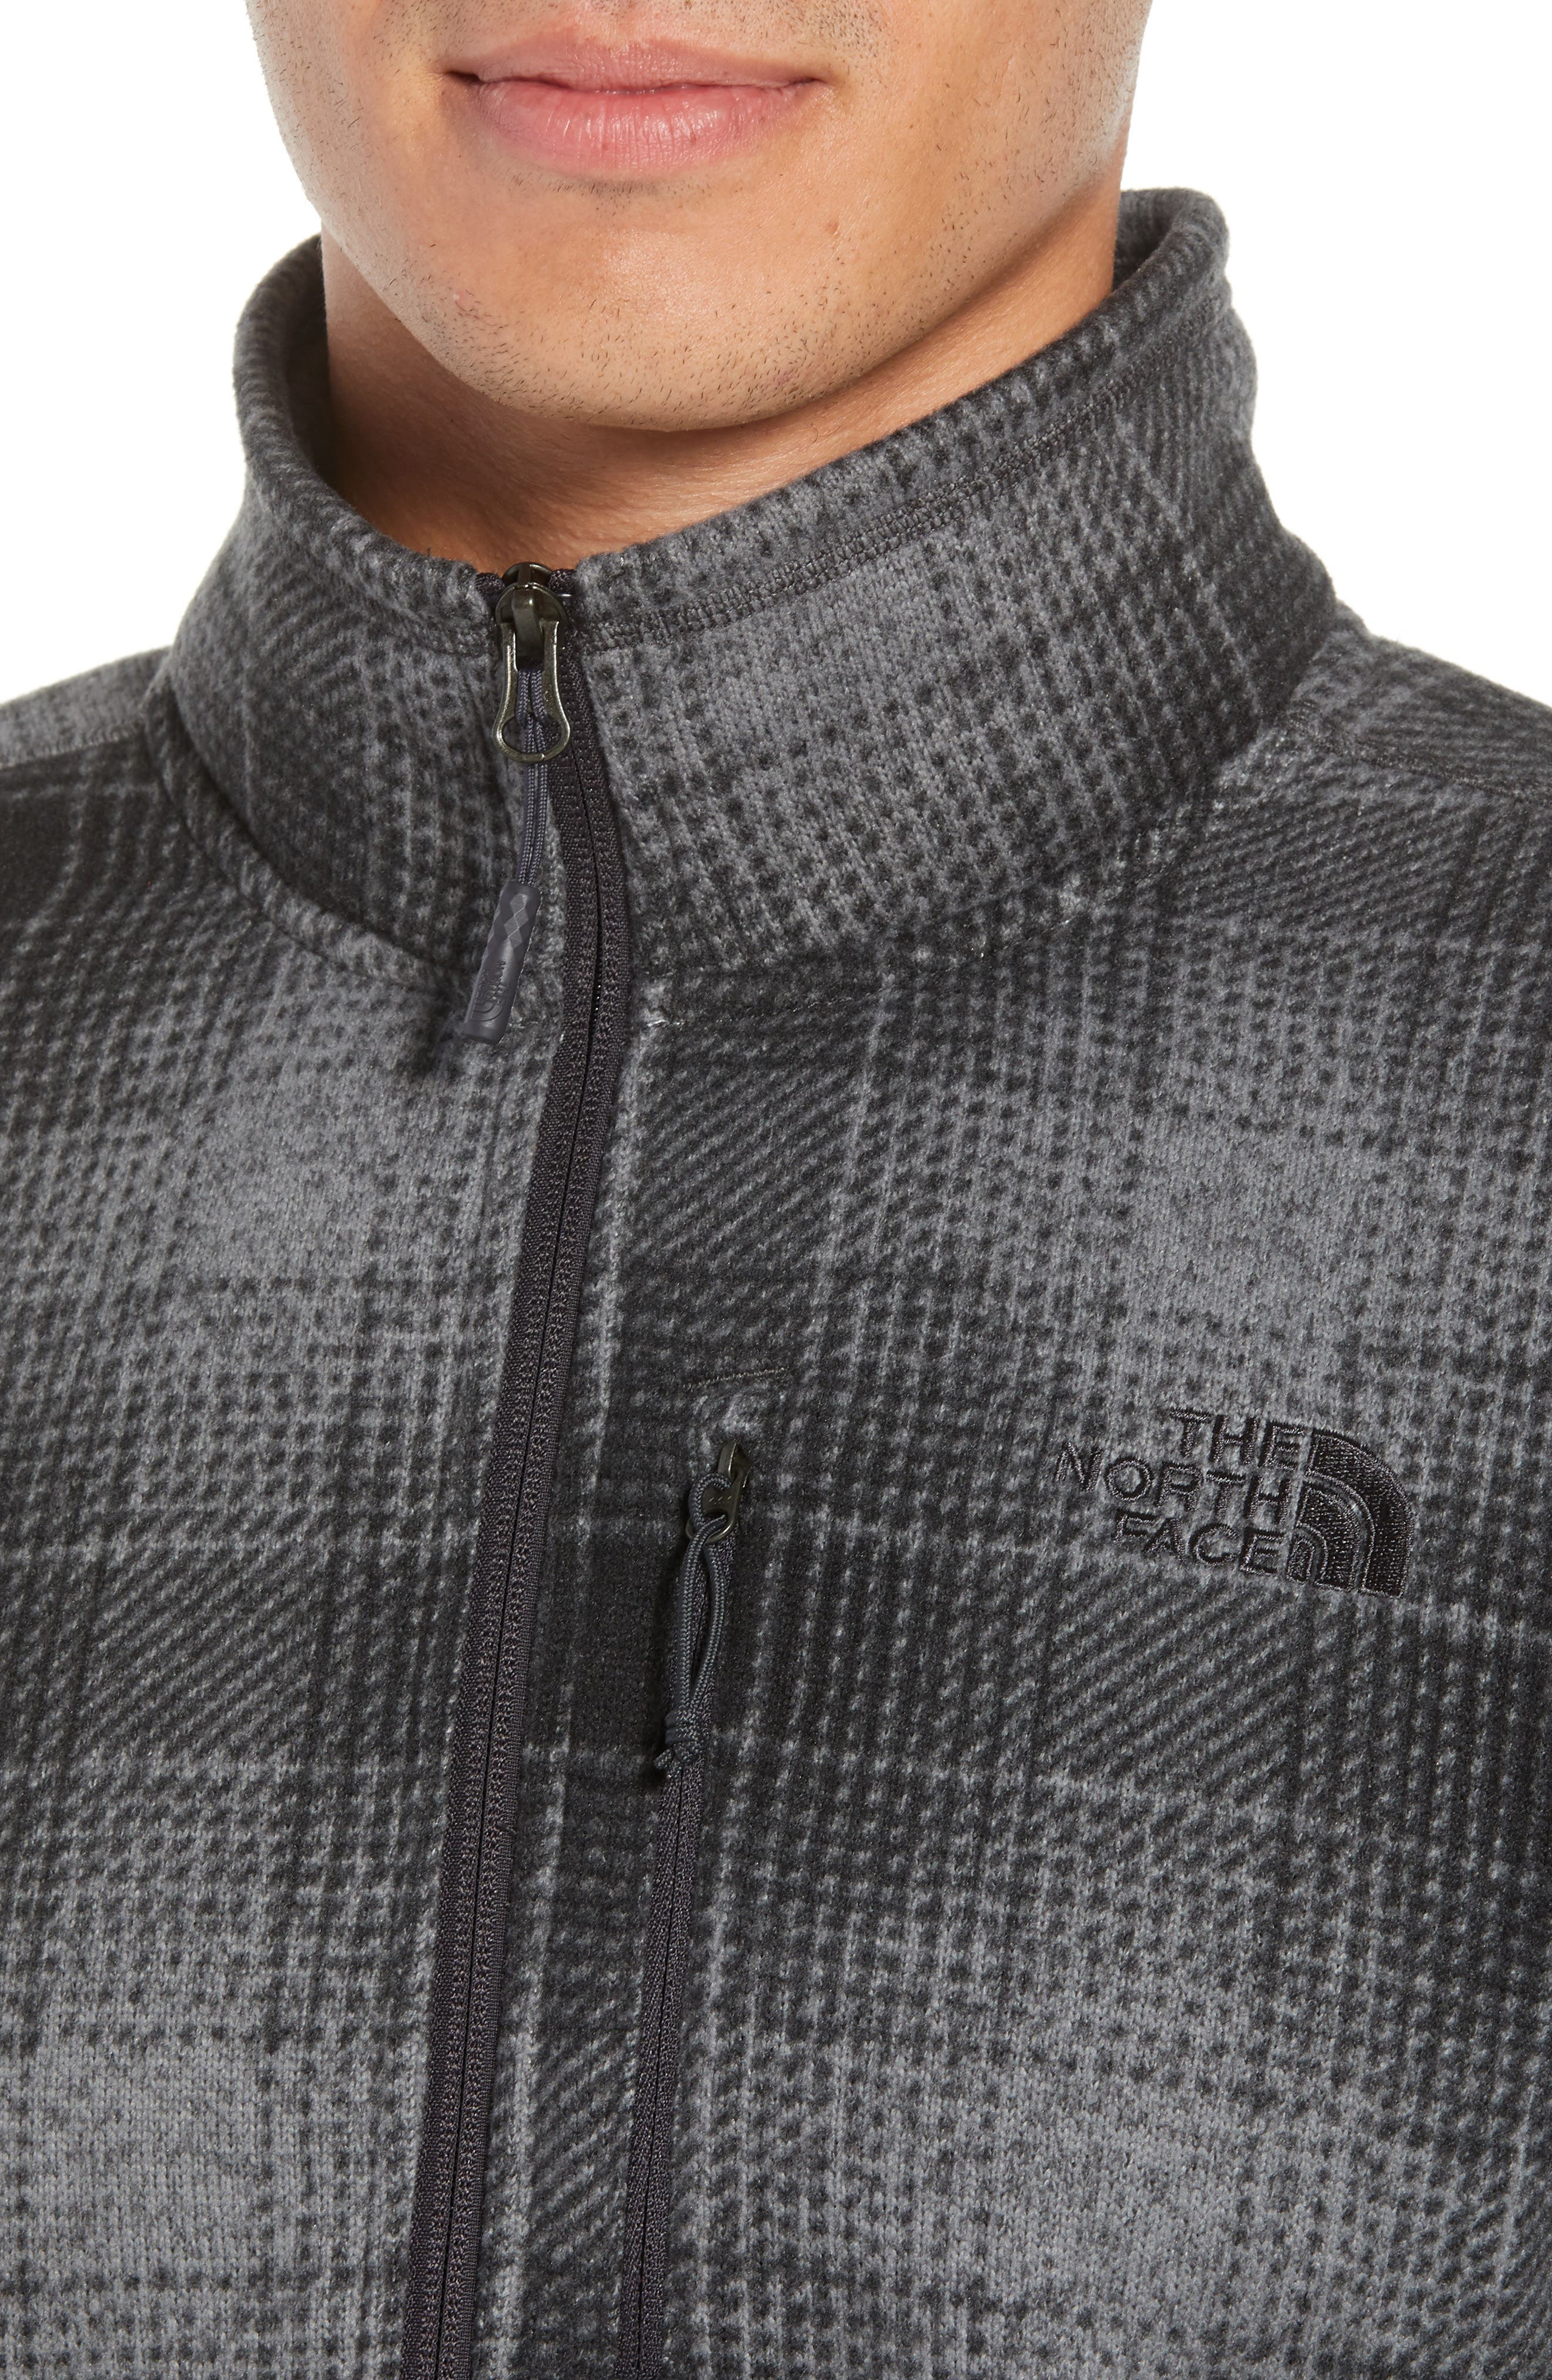 Novelty Gordon Lyons Plaid Pullover,                             Alternate thumbnail 4, color,                             MONUMENT GREY OMBRE PLAID